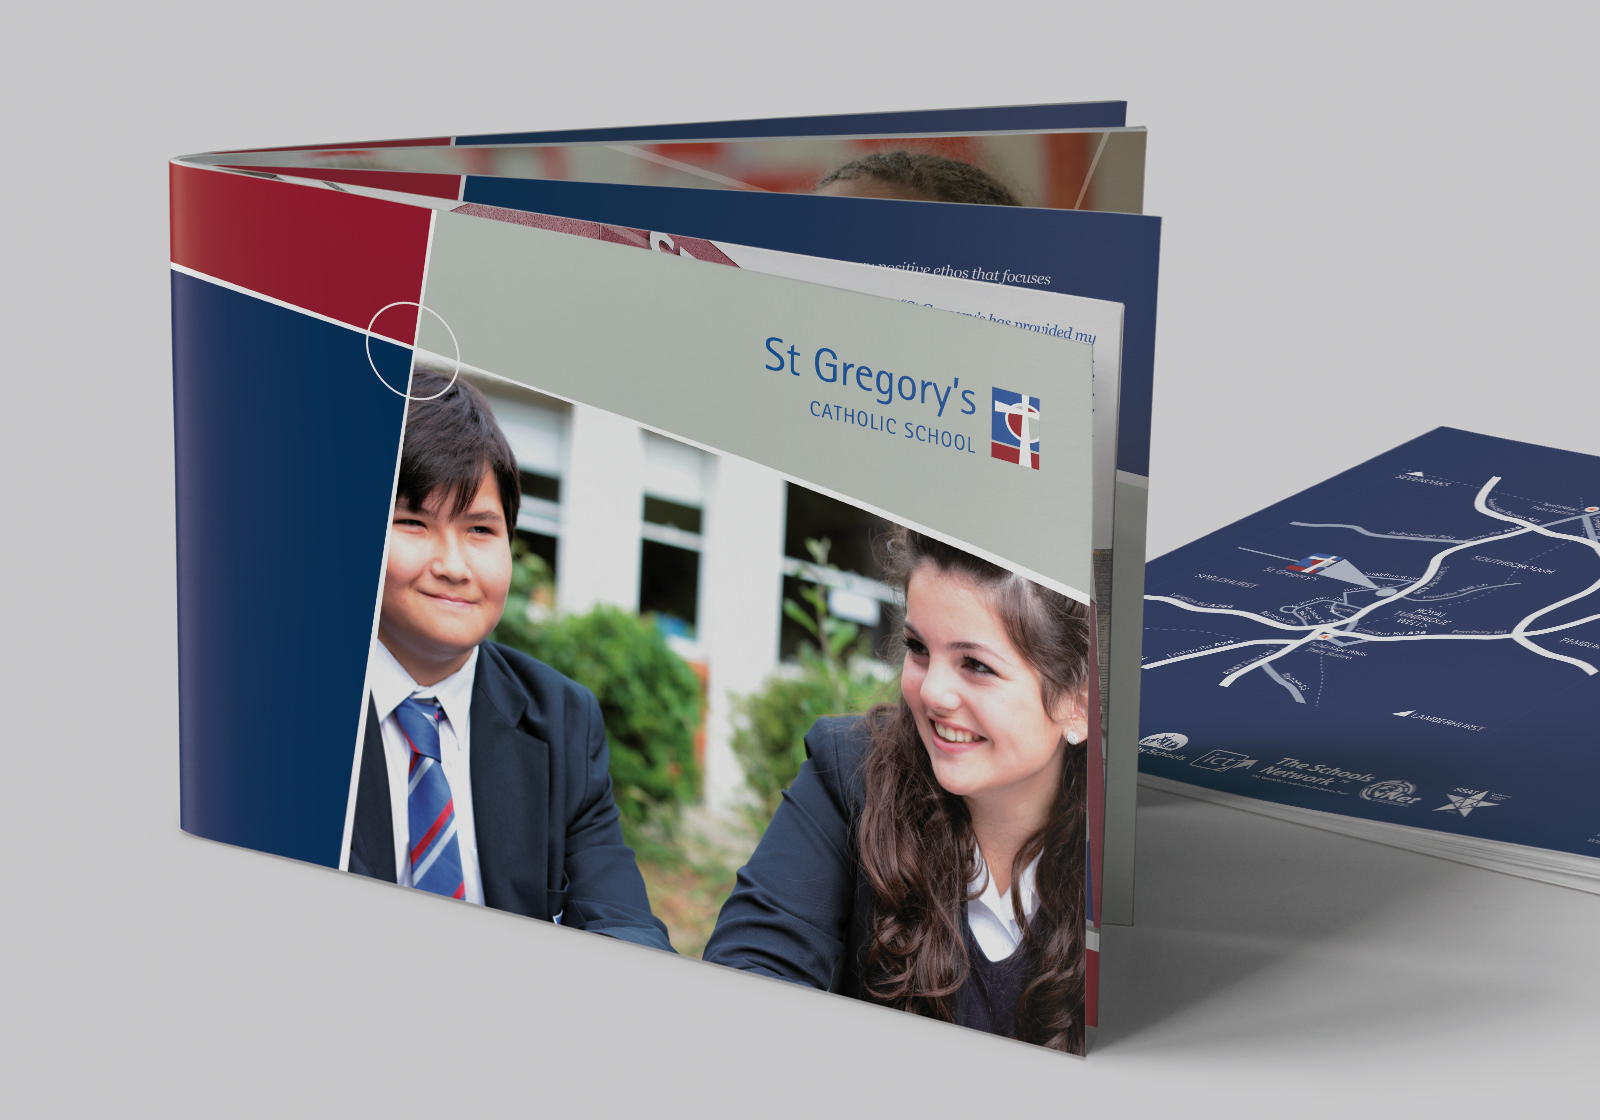 Website for St Gregory's Catholic School